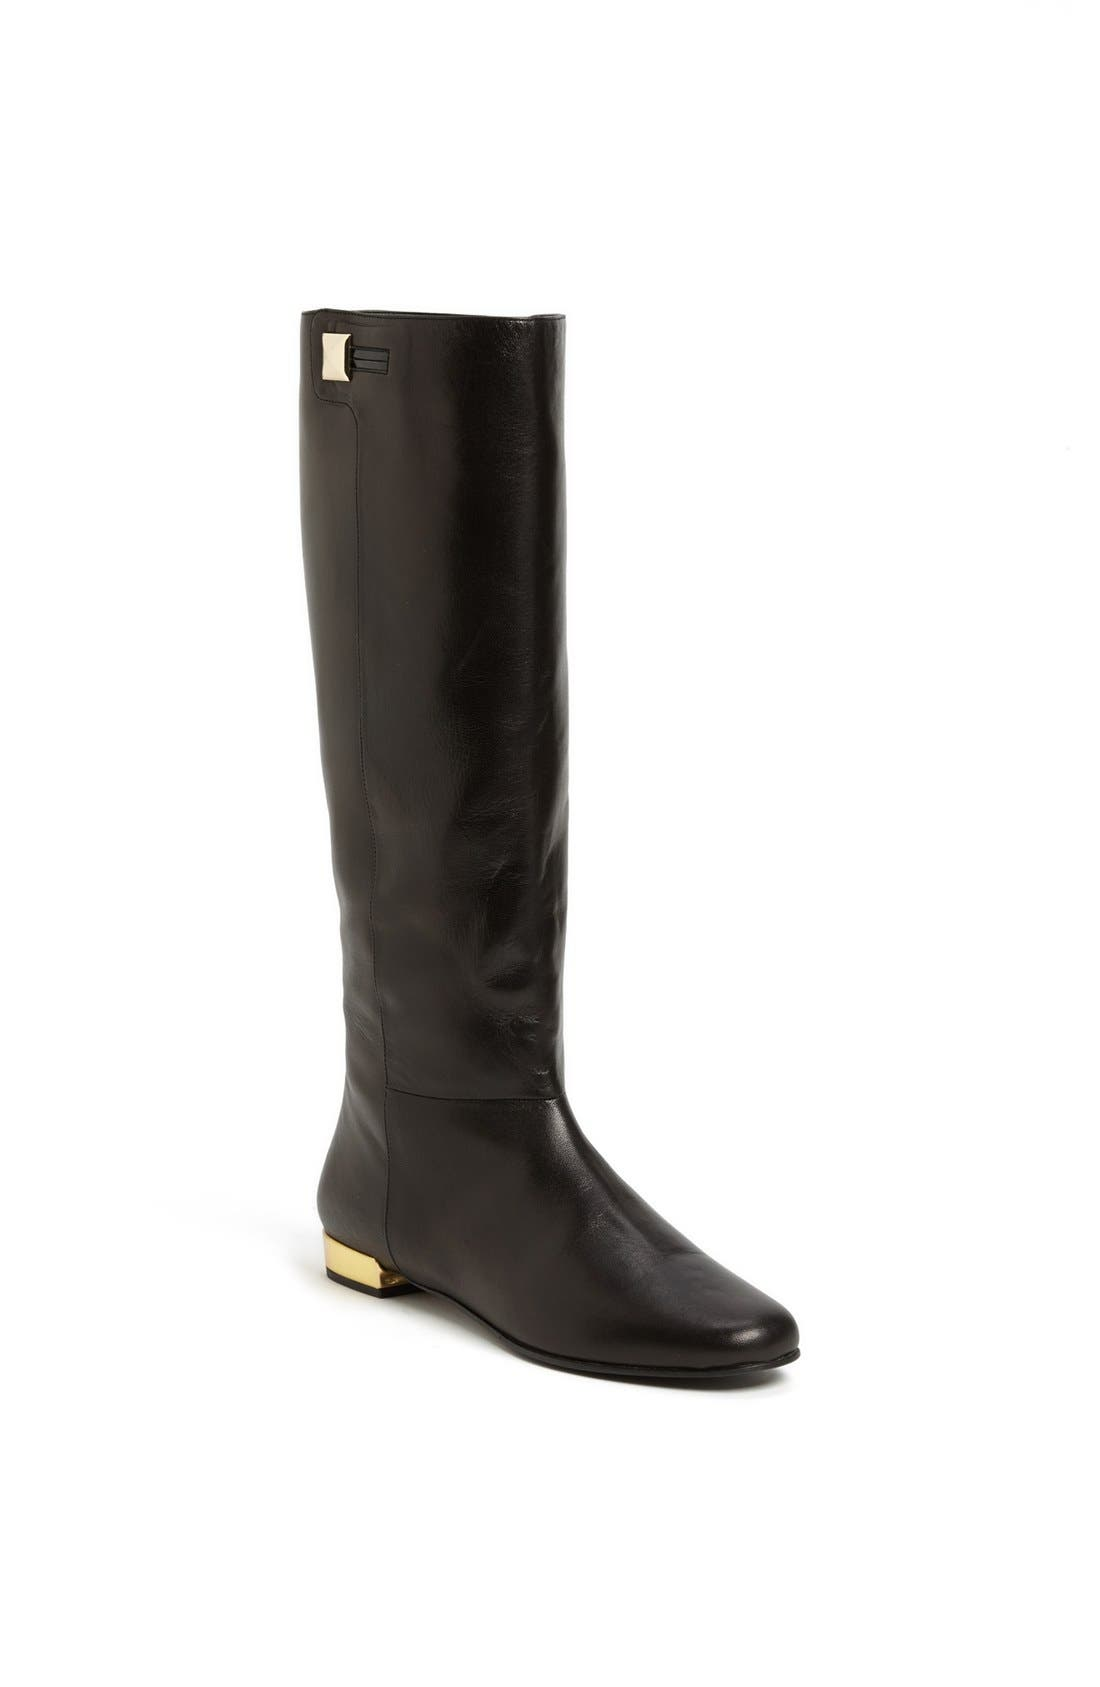 Main Image - kate spade new york 'oliver' boot